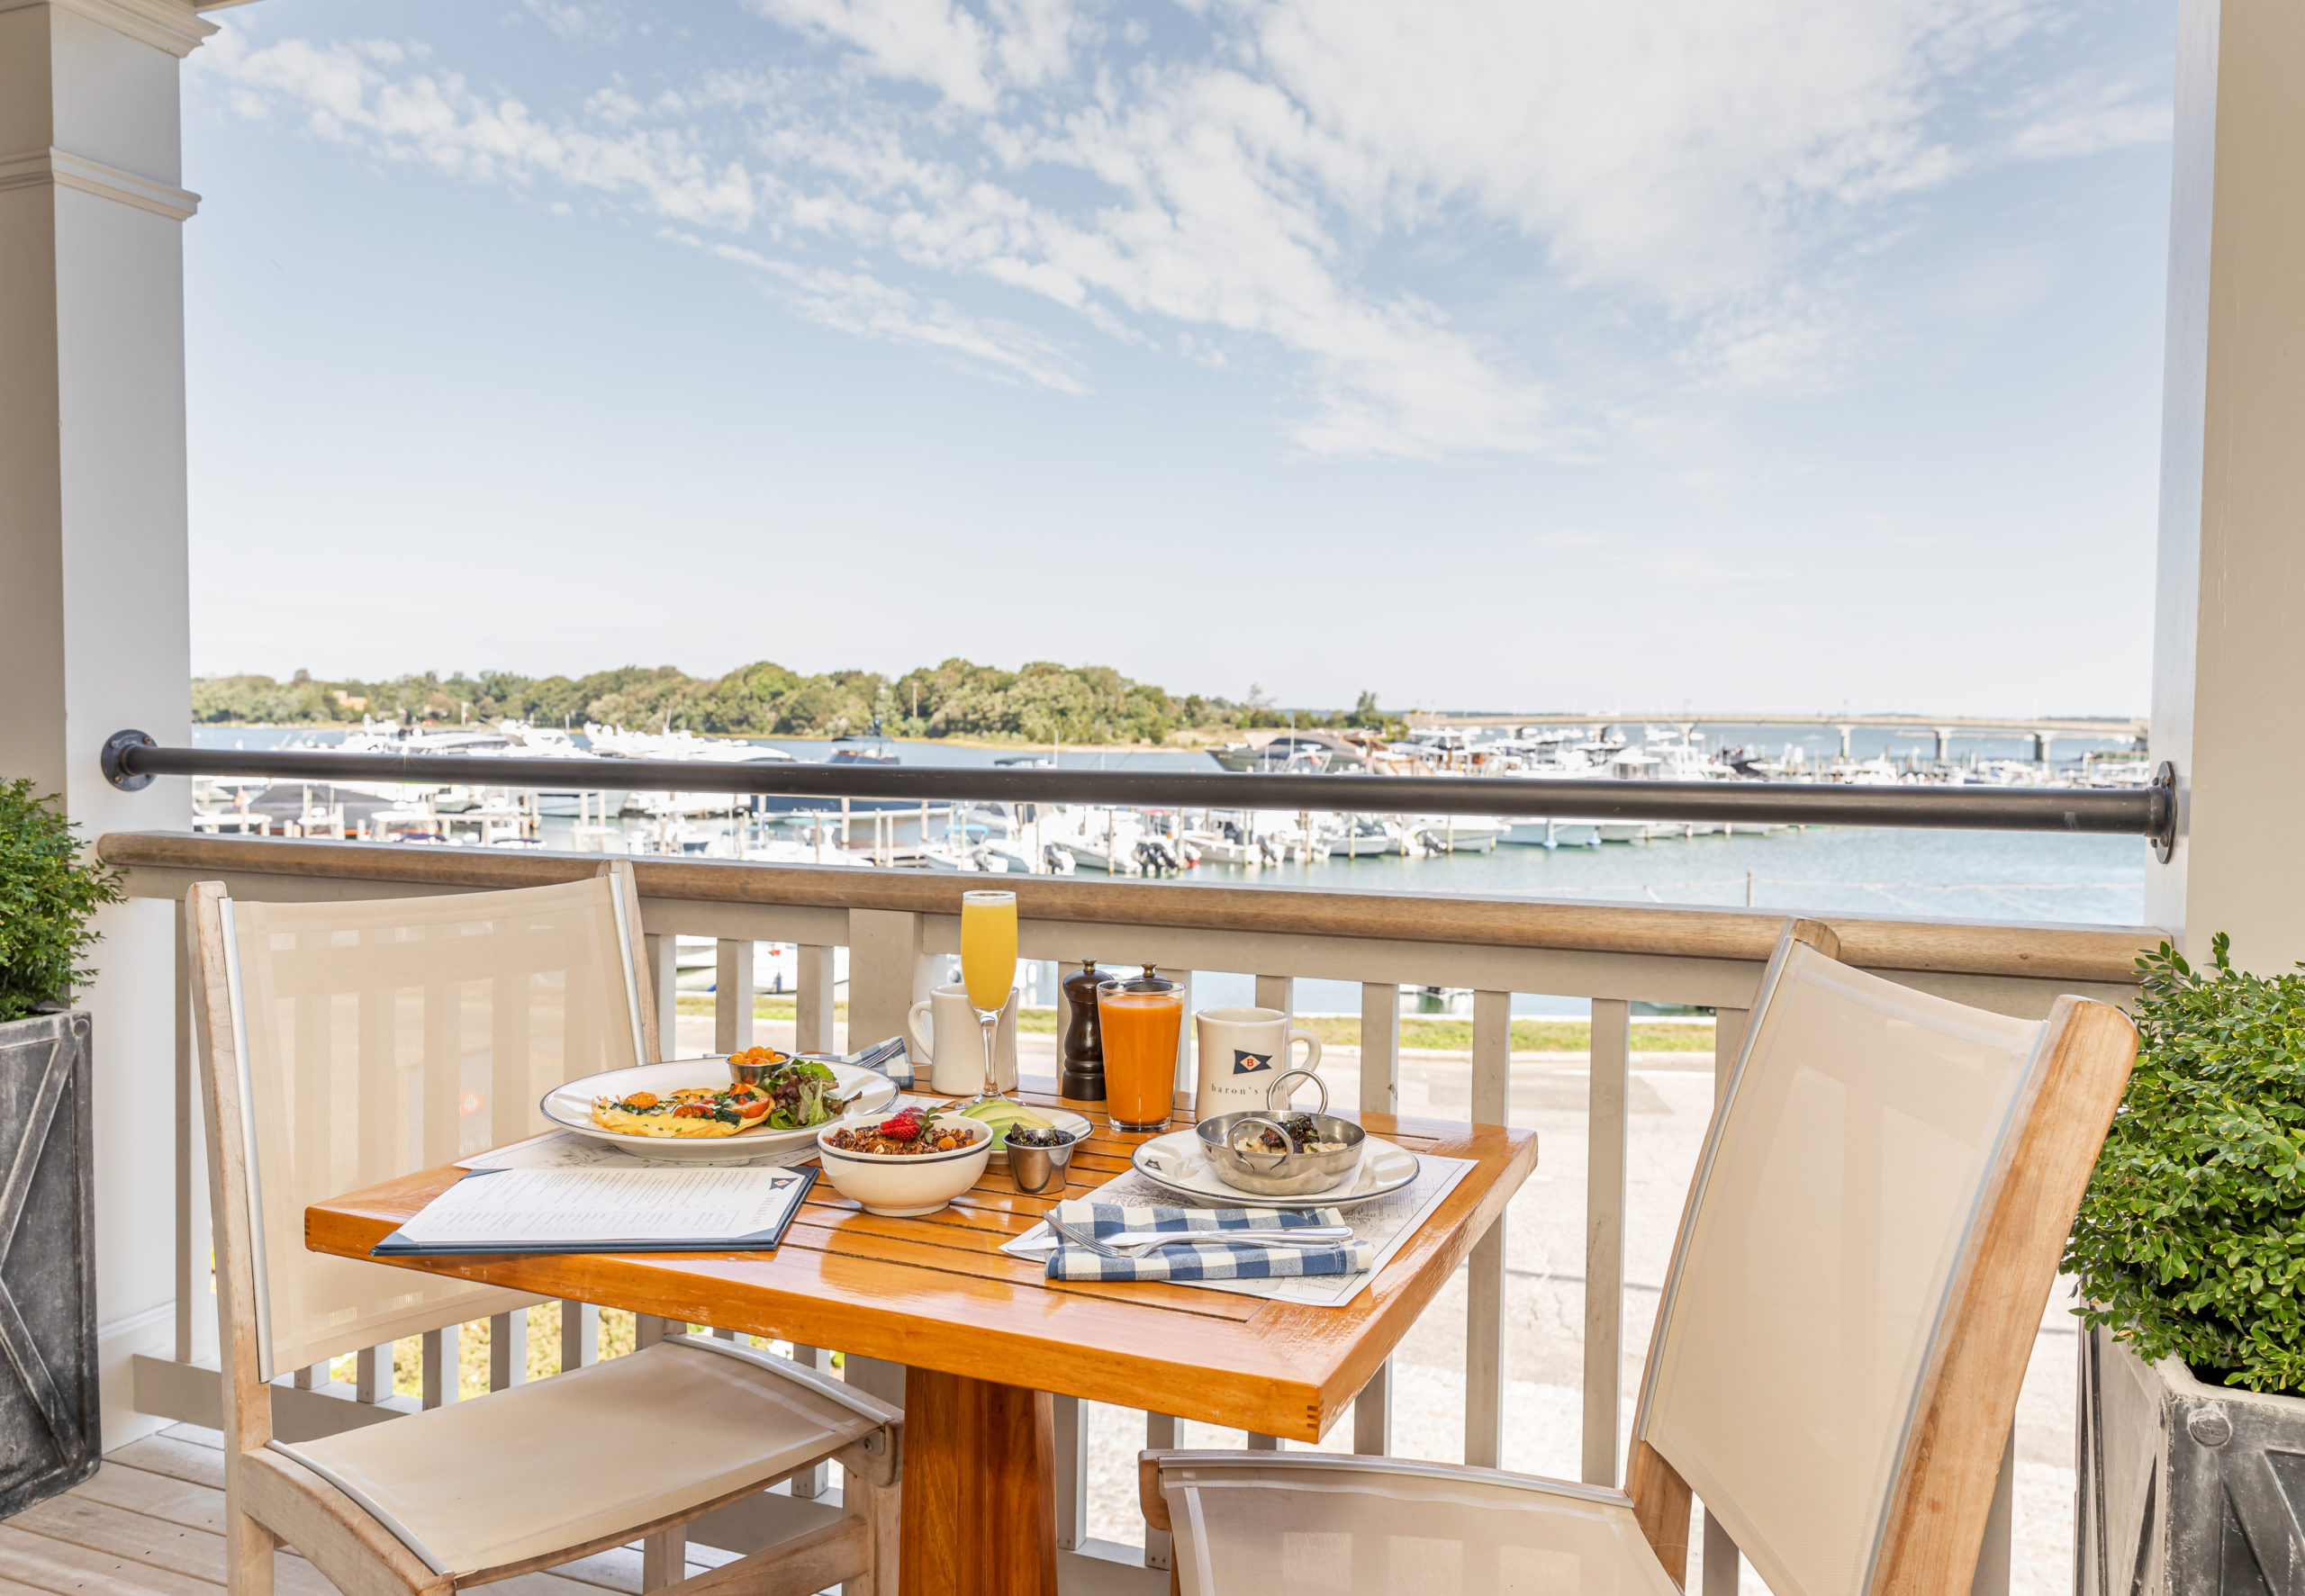 Baron's Cove in Sag Harbor is offering Easter dining specials.